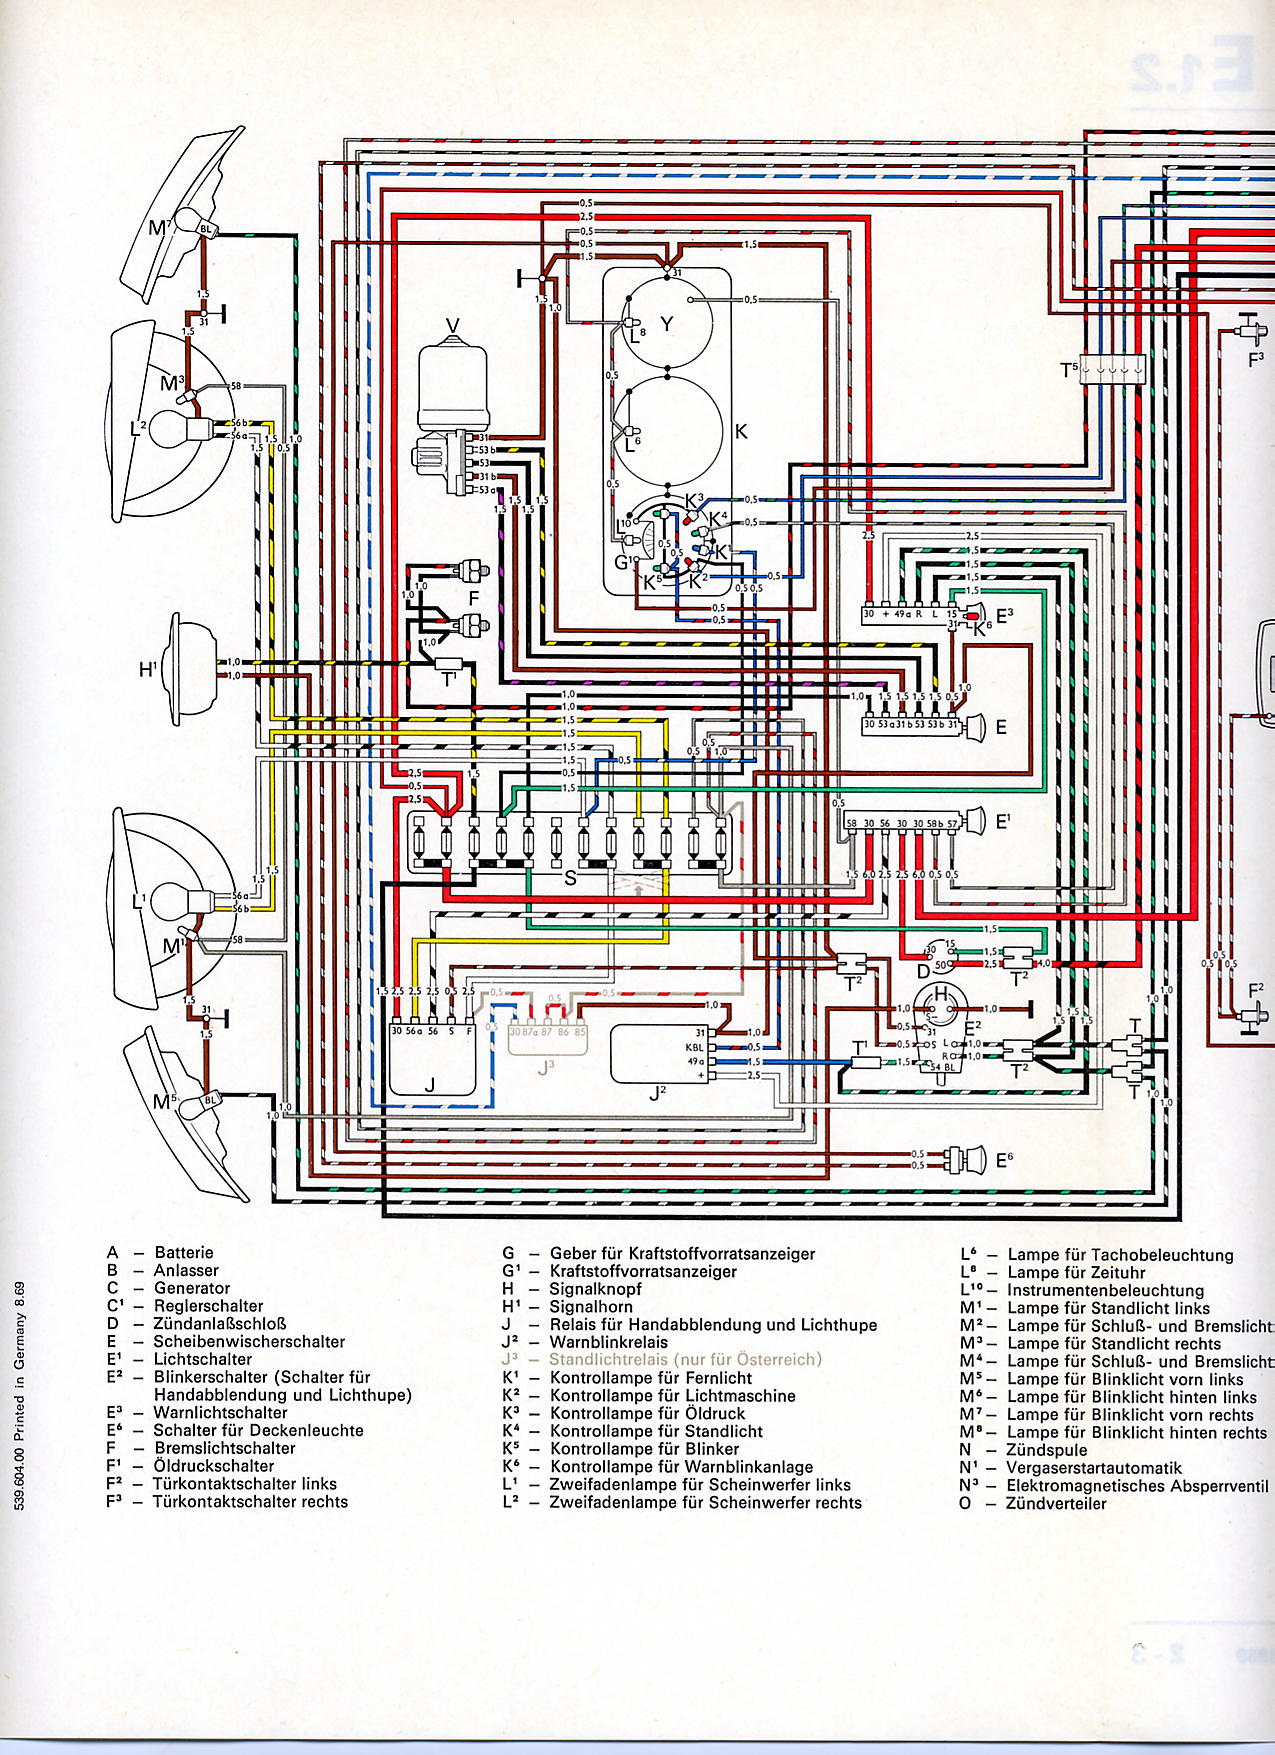 hight resolution of 2000 vw eurovan fuse box diagram wiring library1997 vw eurovan wiring diagram detailed schematics diagram rh